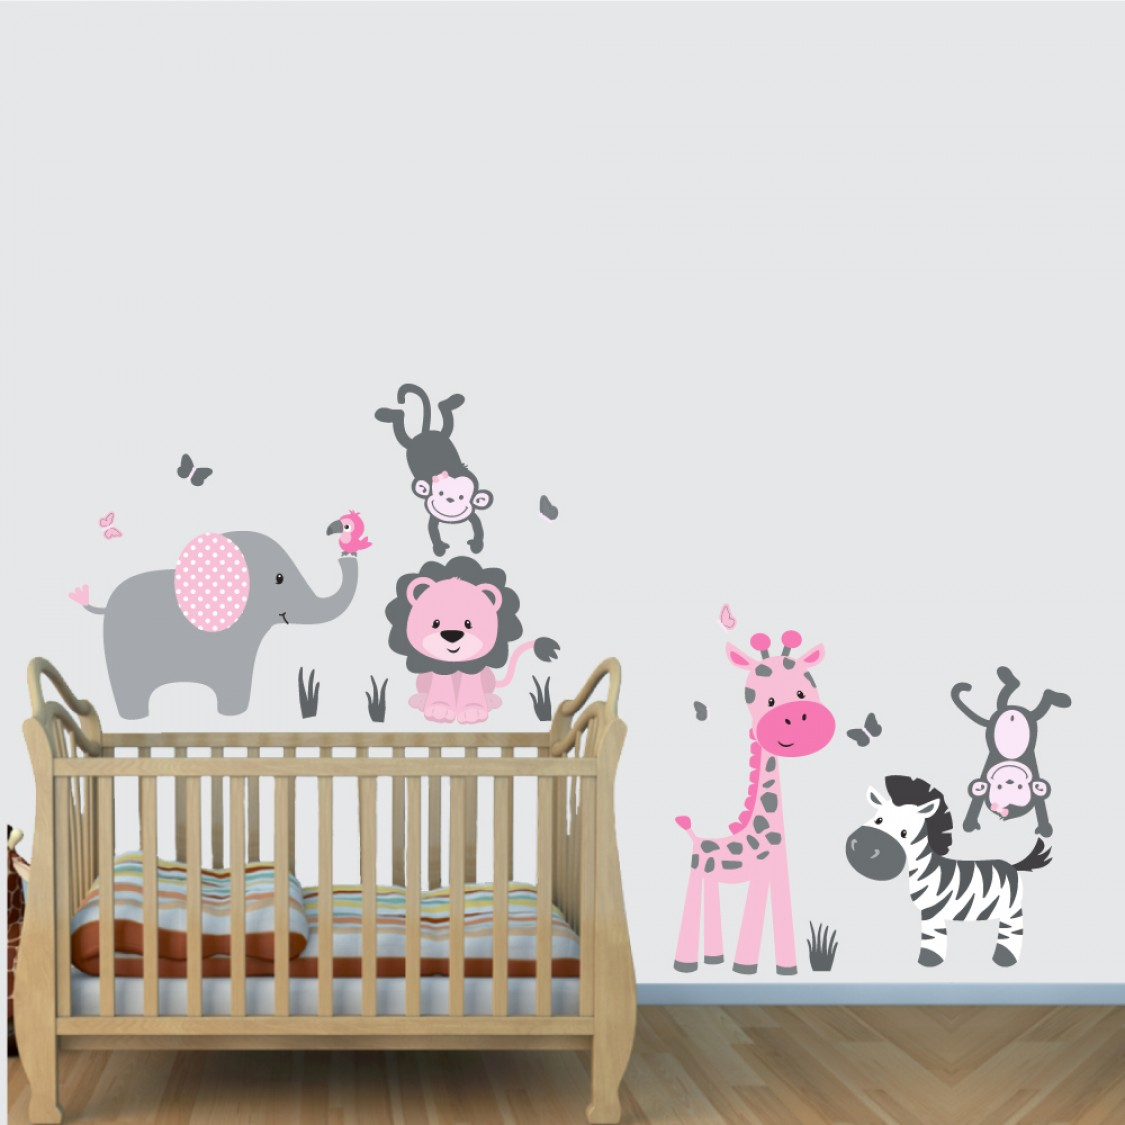 Pink Gray Safari Nursery Wall Decals With Lion Stickers For Boys